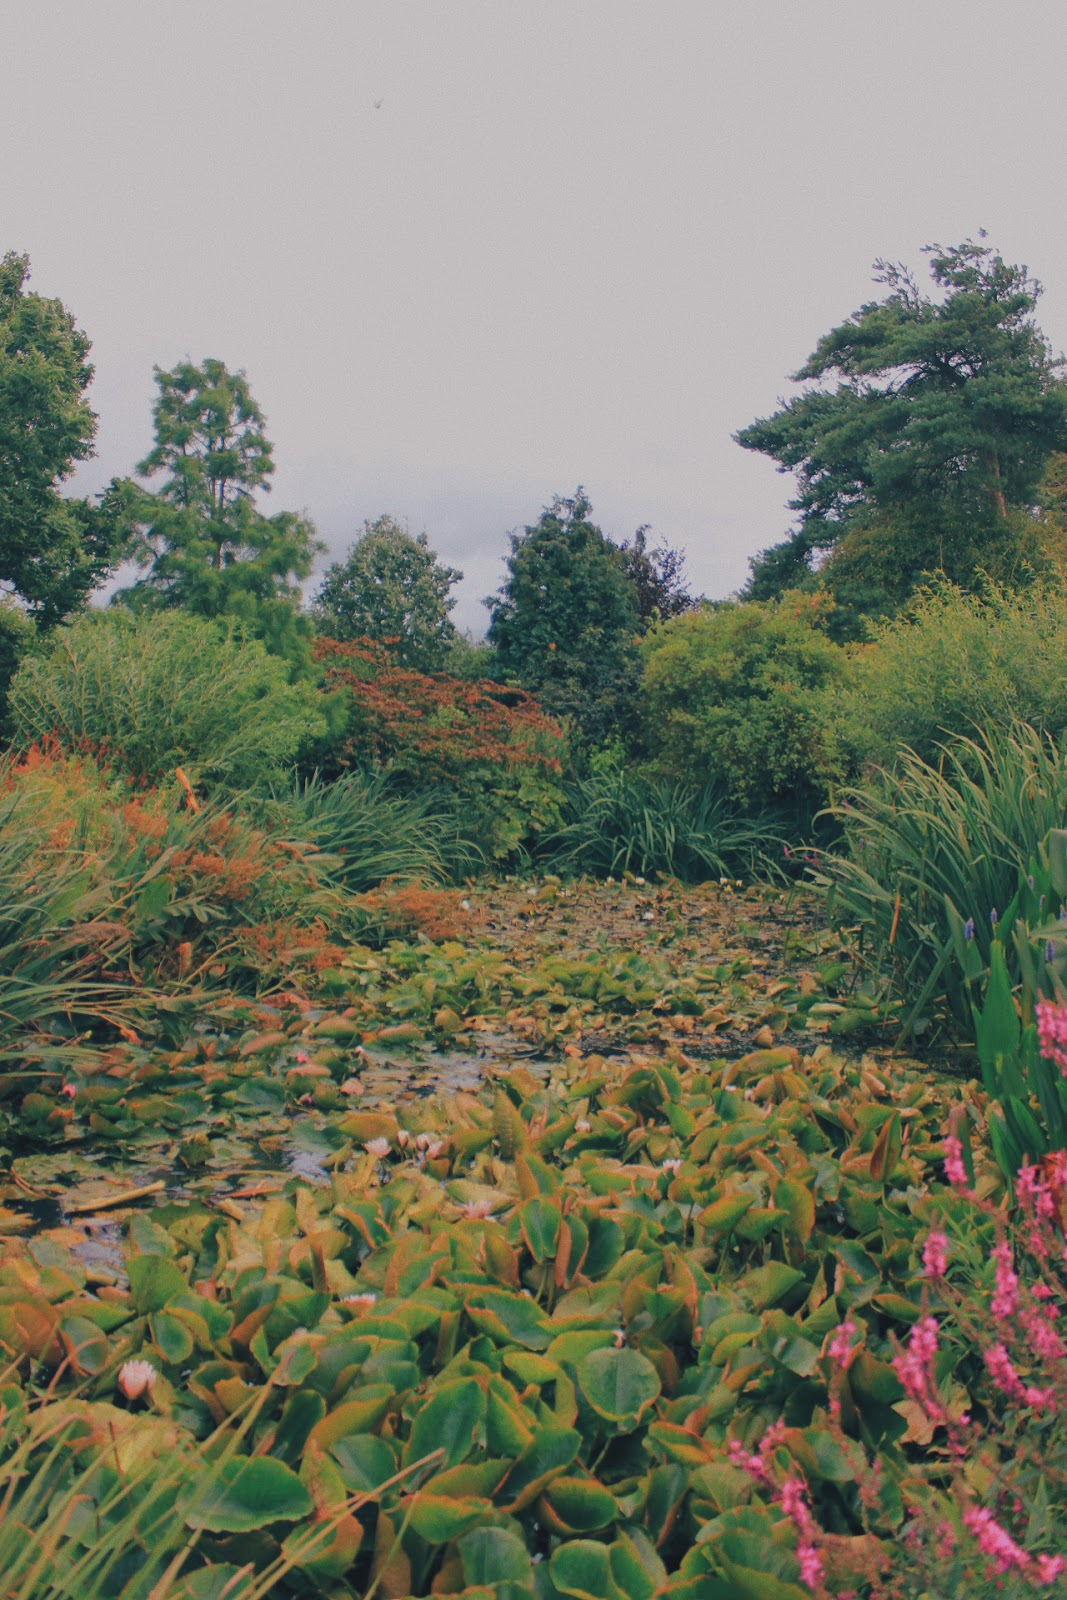 Exploring Goltho Gardens in Lincolnshire